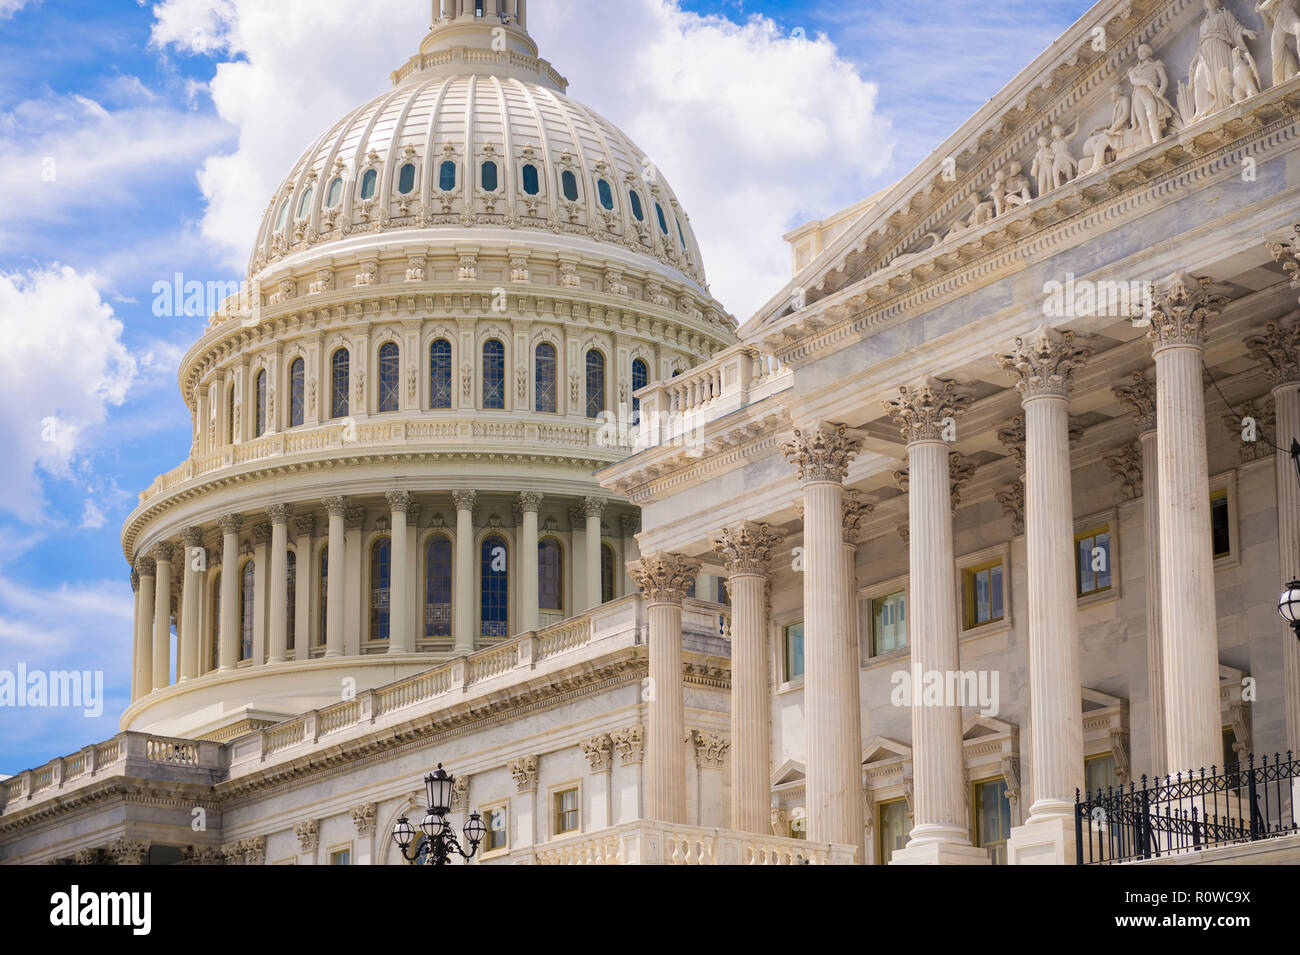 Sunny close-up view of the architectural detail of the neo-classical facade of the US Capitol Building under bright sky in Washington DC, USA - Stock Image